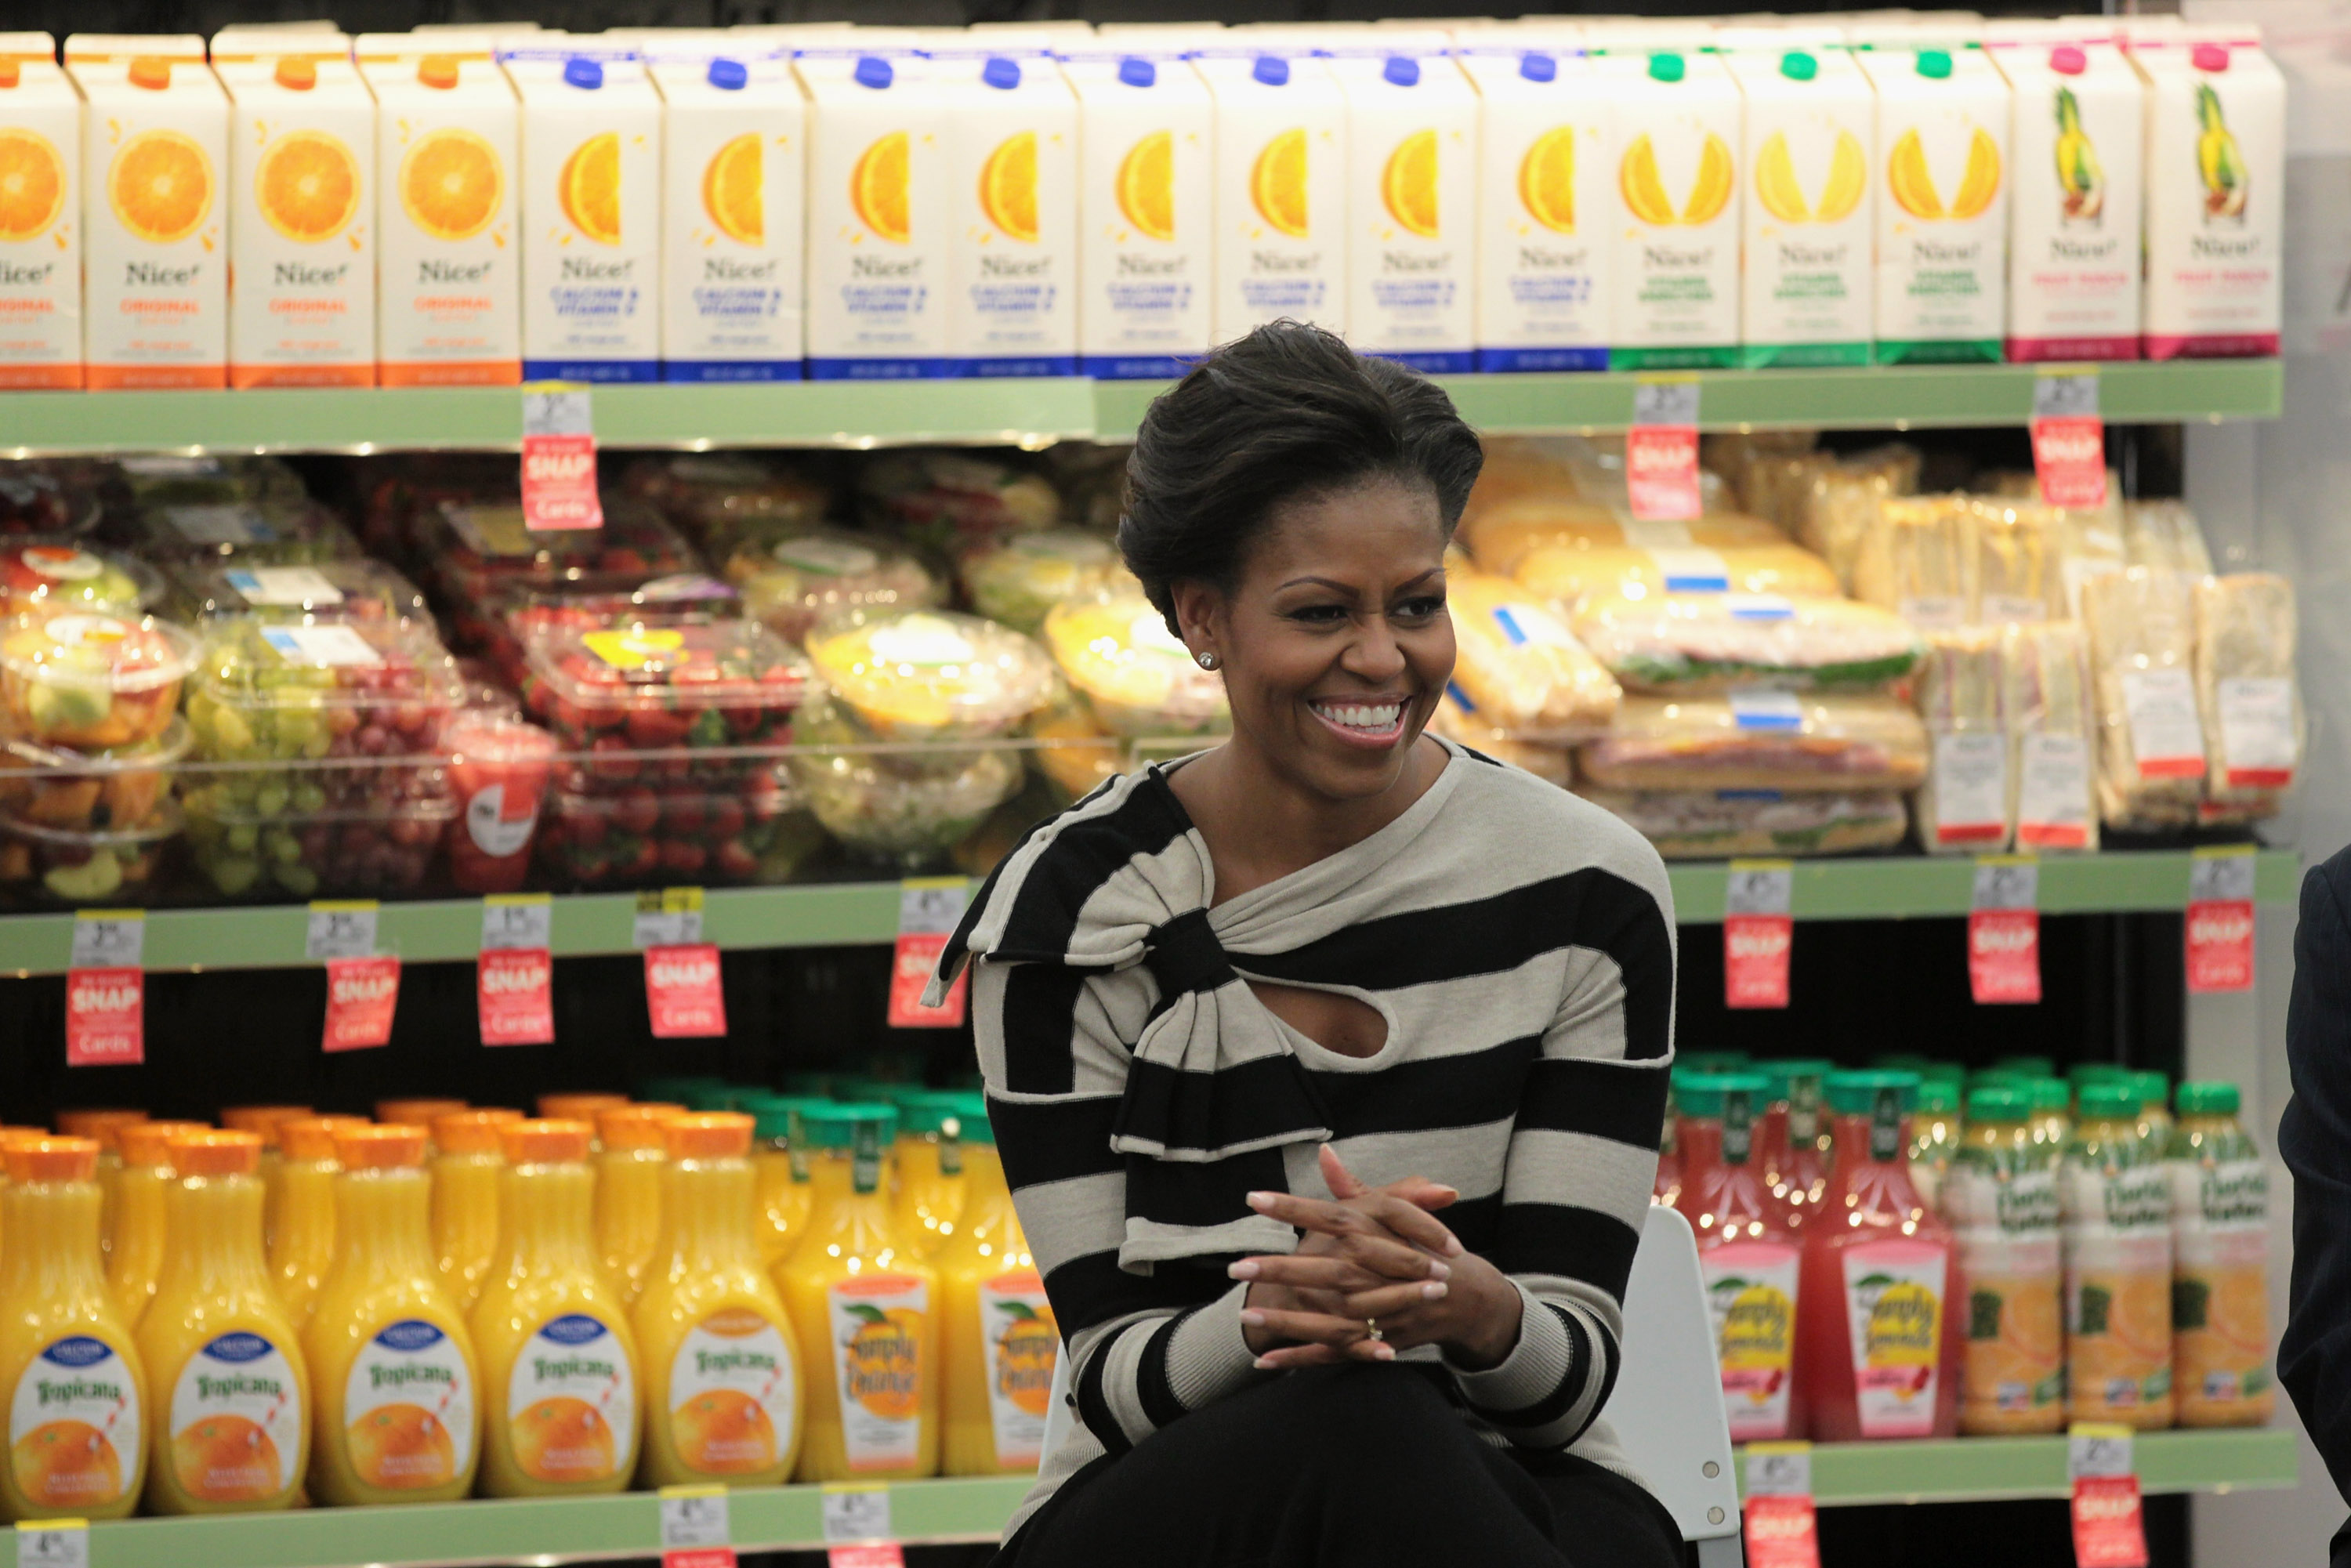 First Lady Michelle Obama Visits Chicago Promoting Healthy Food Options